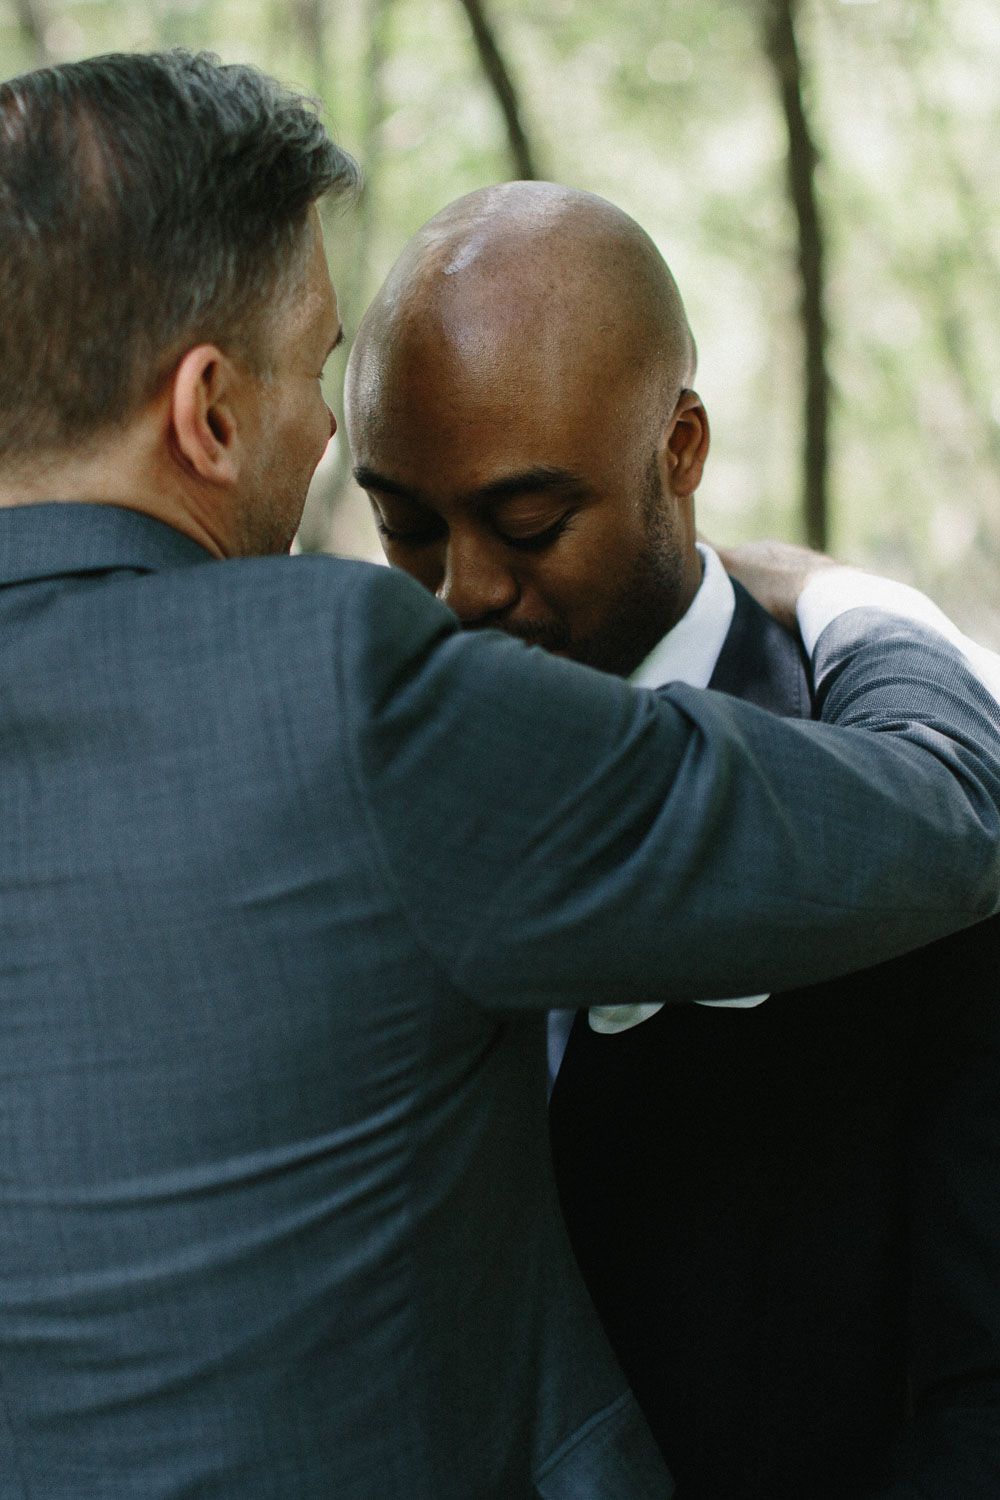 decatur_atlanta_courthouse_elopement_dekalb_gay_weddings-1238.jpg